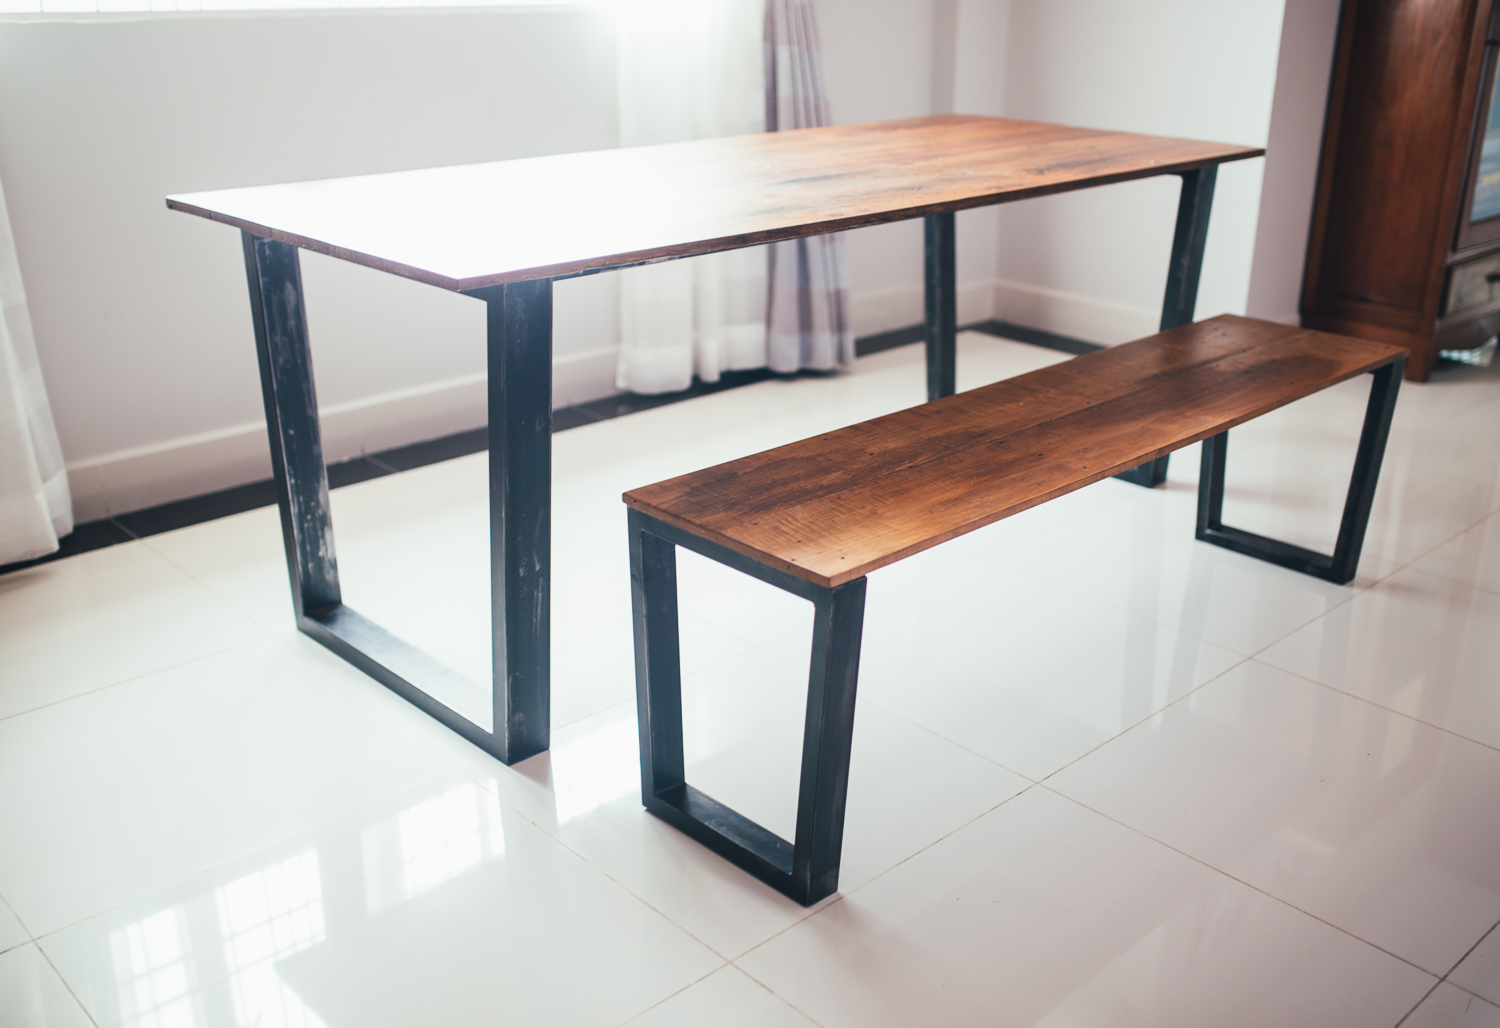 Minimalist Table Minimalist Table Alchemy Design Co